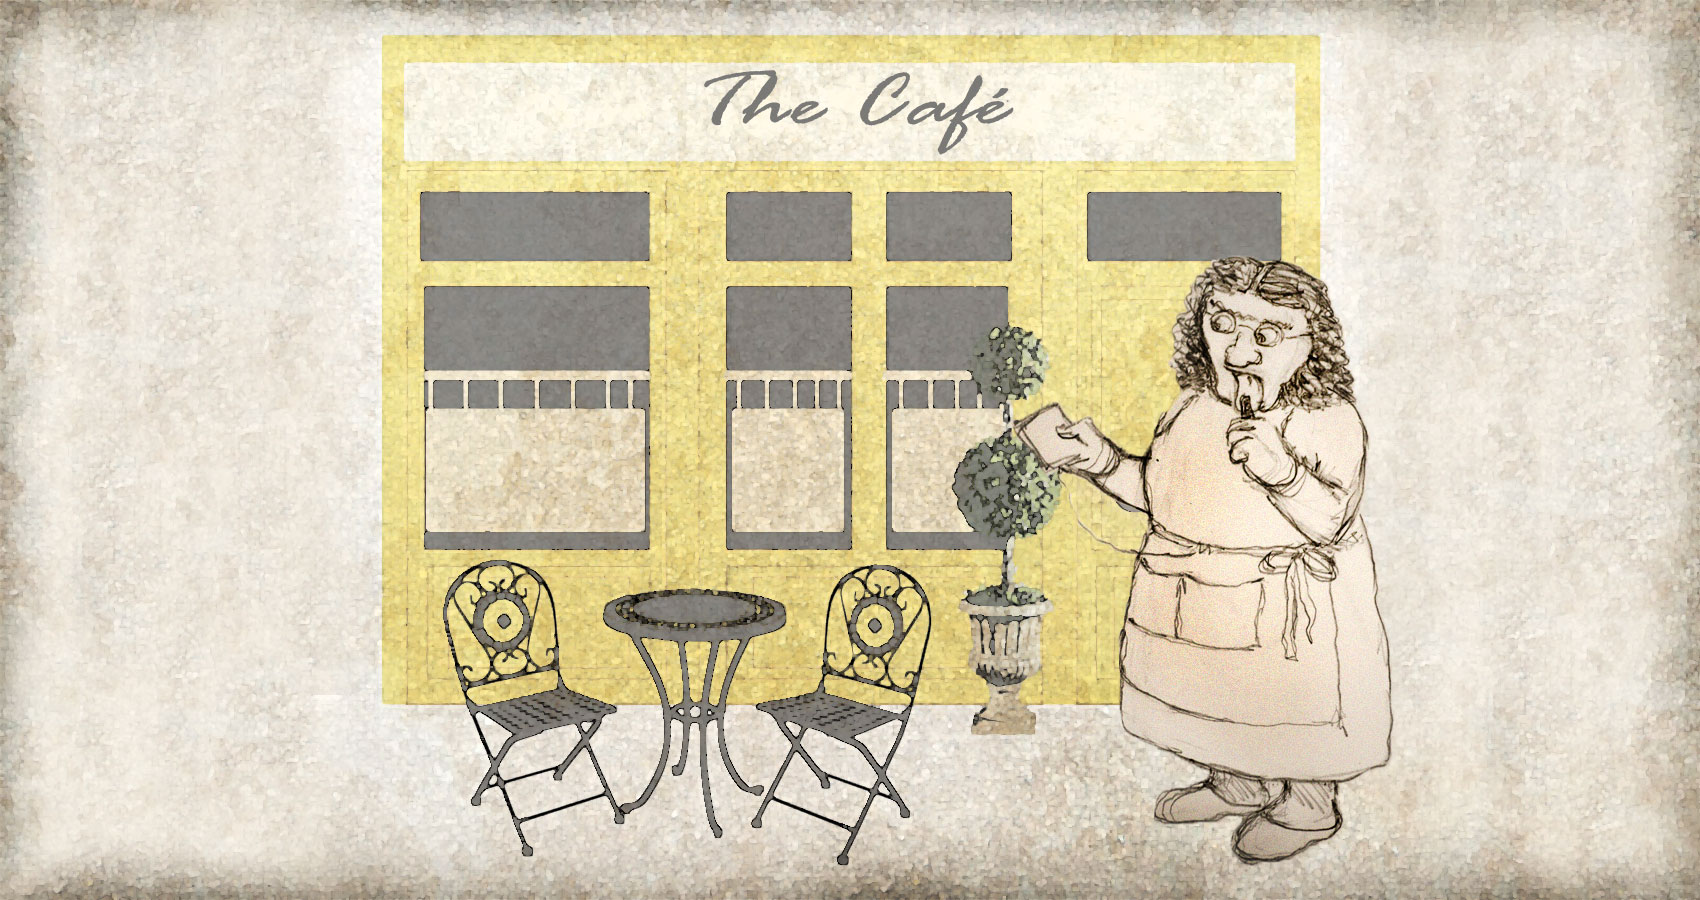 The Visit To The Café written by Rodney Ison at Spillwords.com